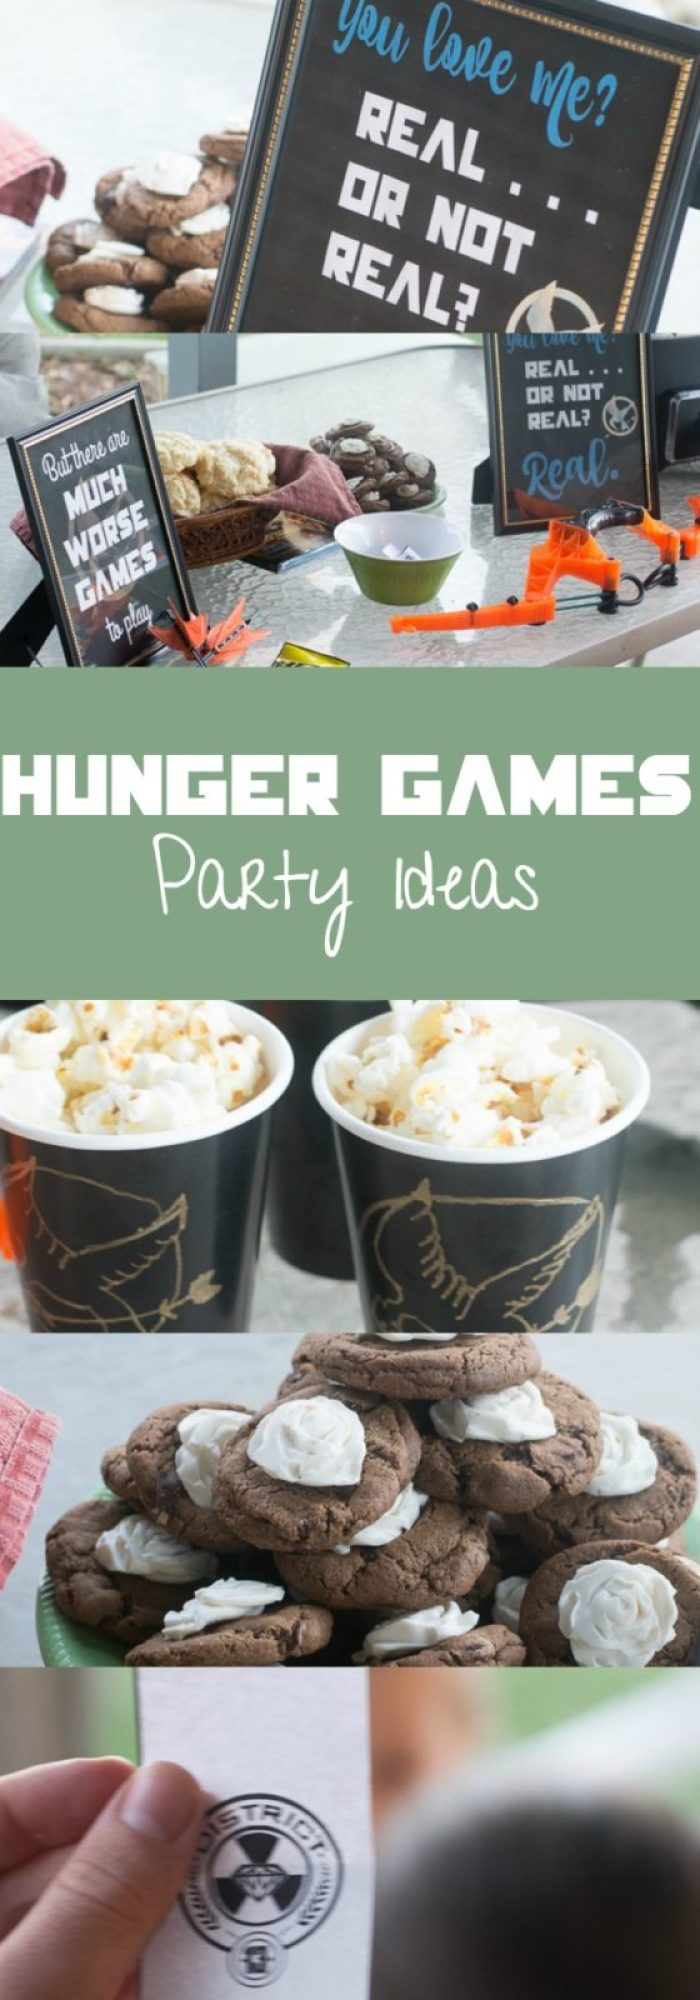 Lots of fun Hunger Games party ideas - Hunger Game's themed food, decor, and games!